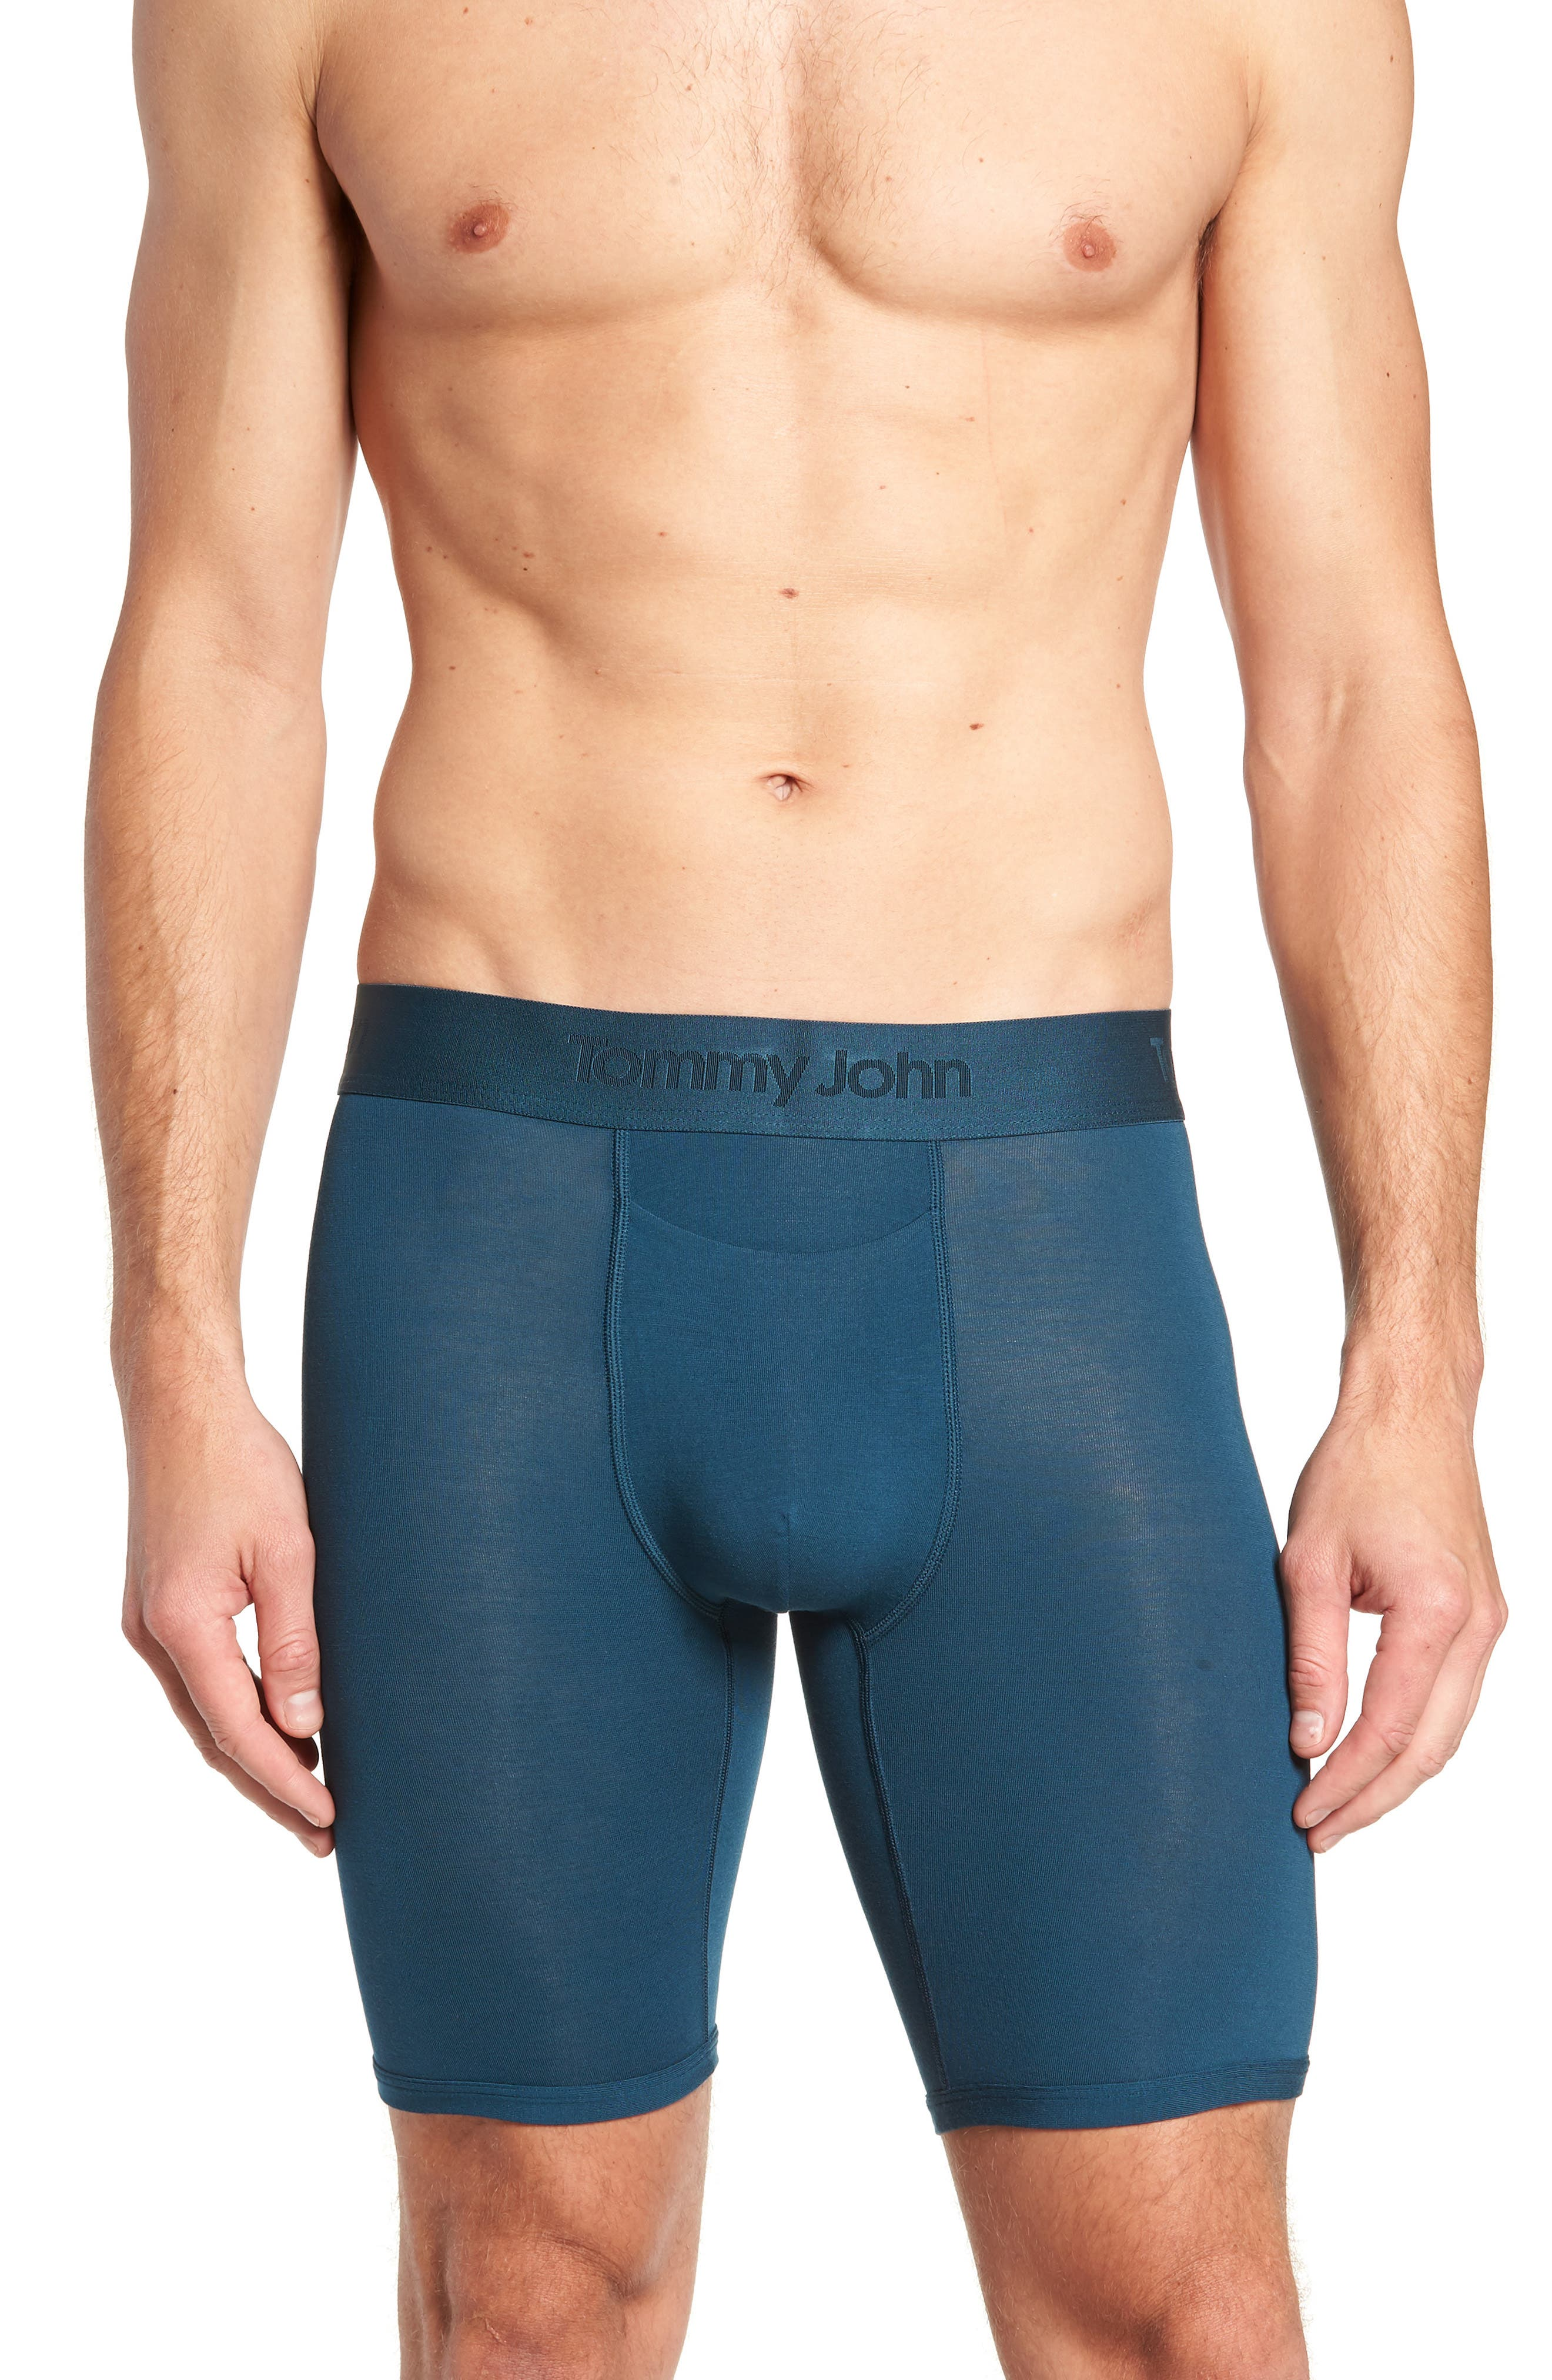 Second Skin Boxer Briefs,                             Main thumbnail 1, color,                             REFLECTING POND